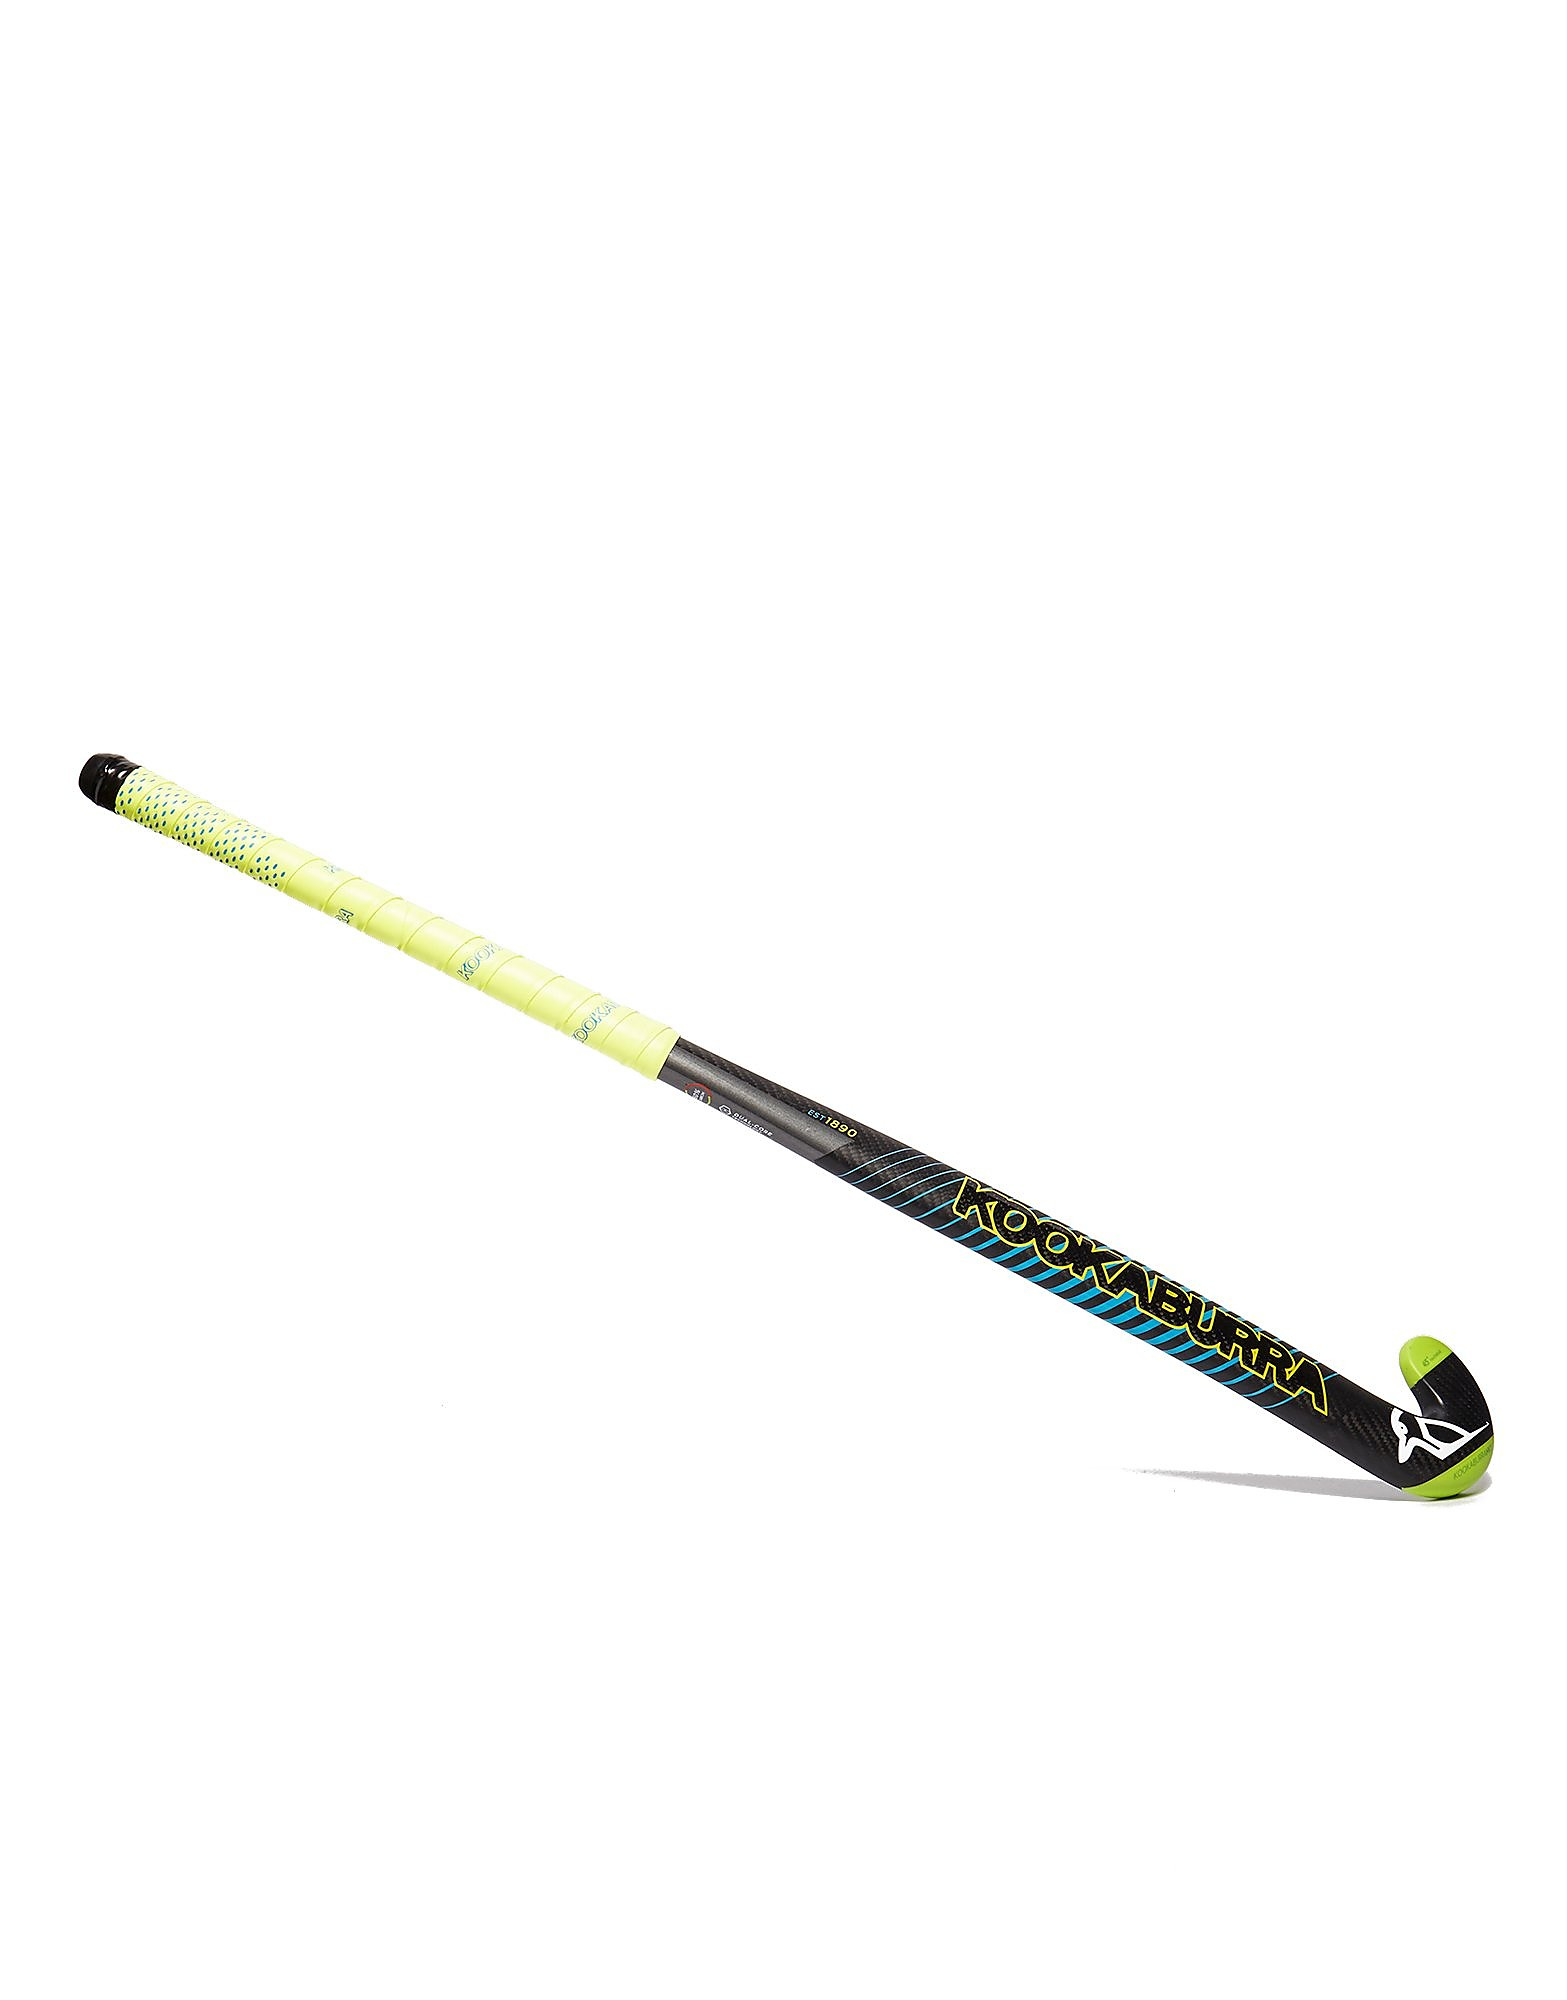 Kookaburra Surge Composite Hockey Stick